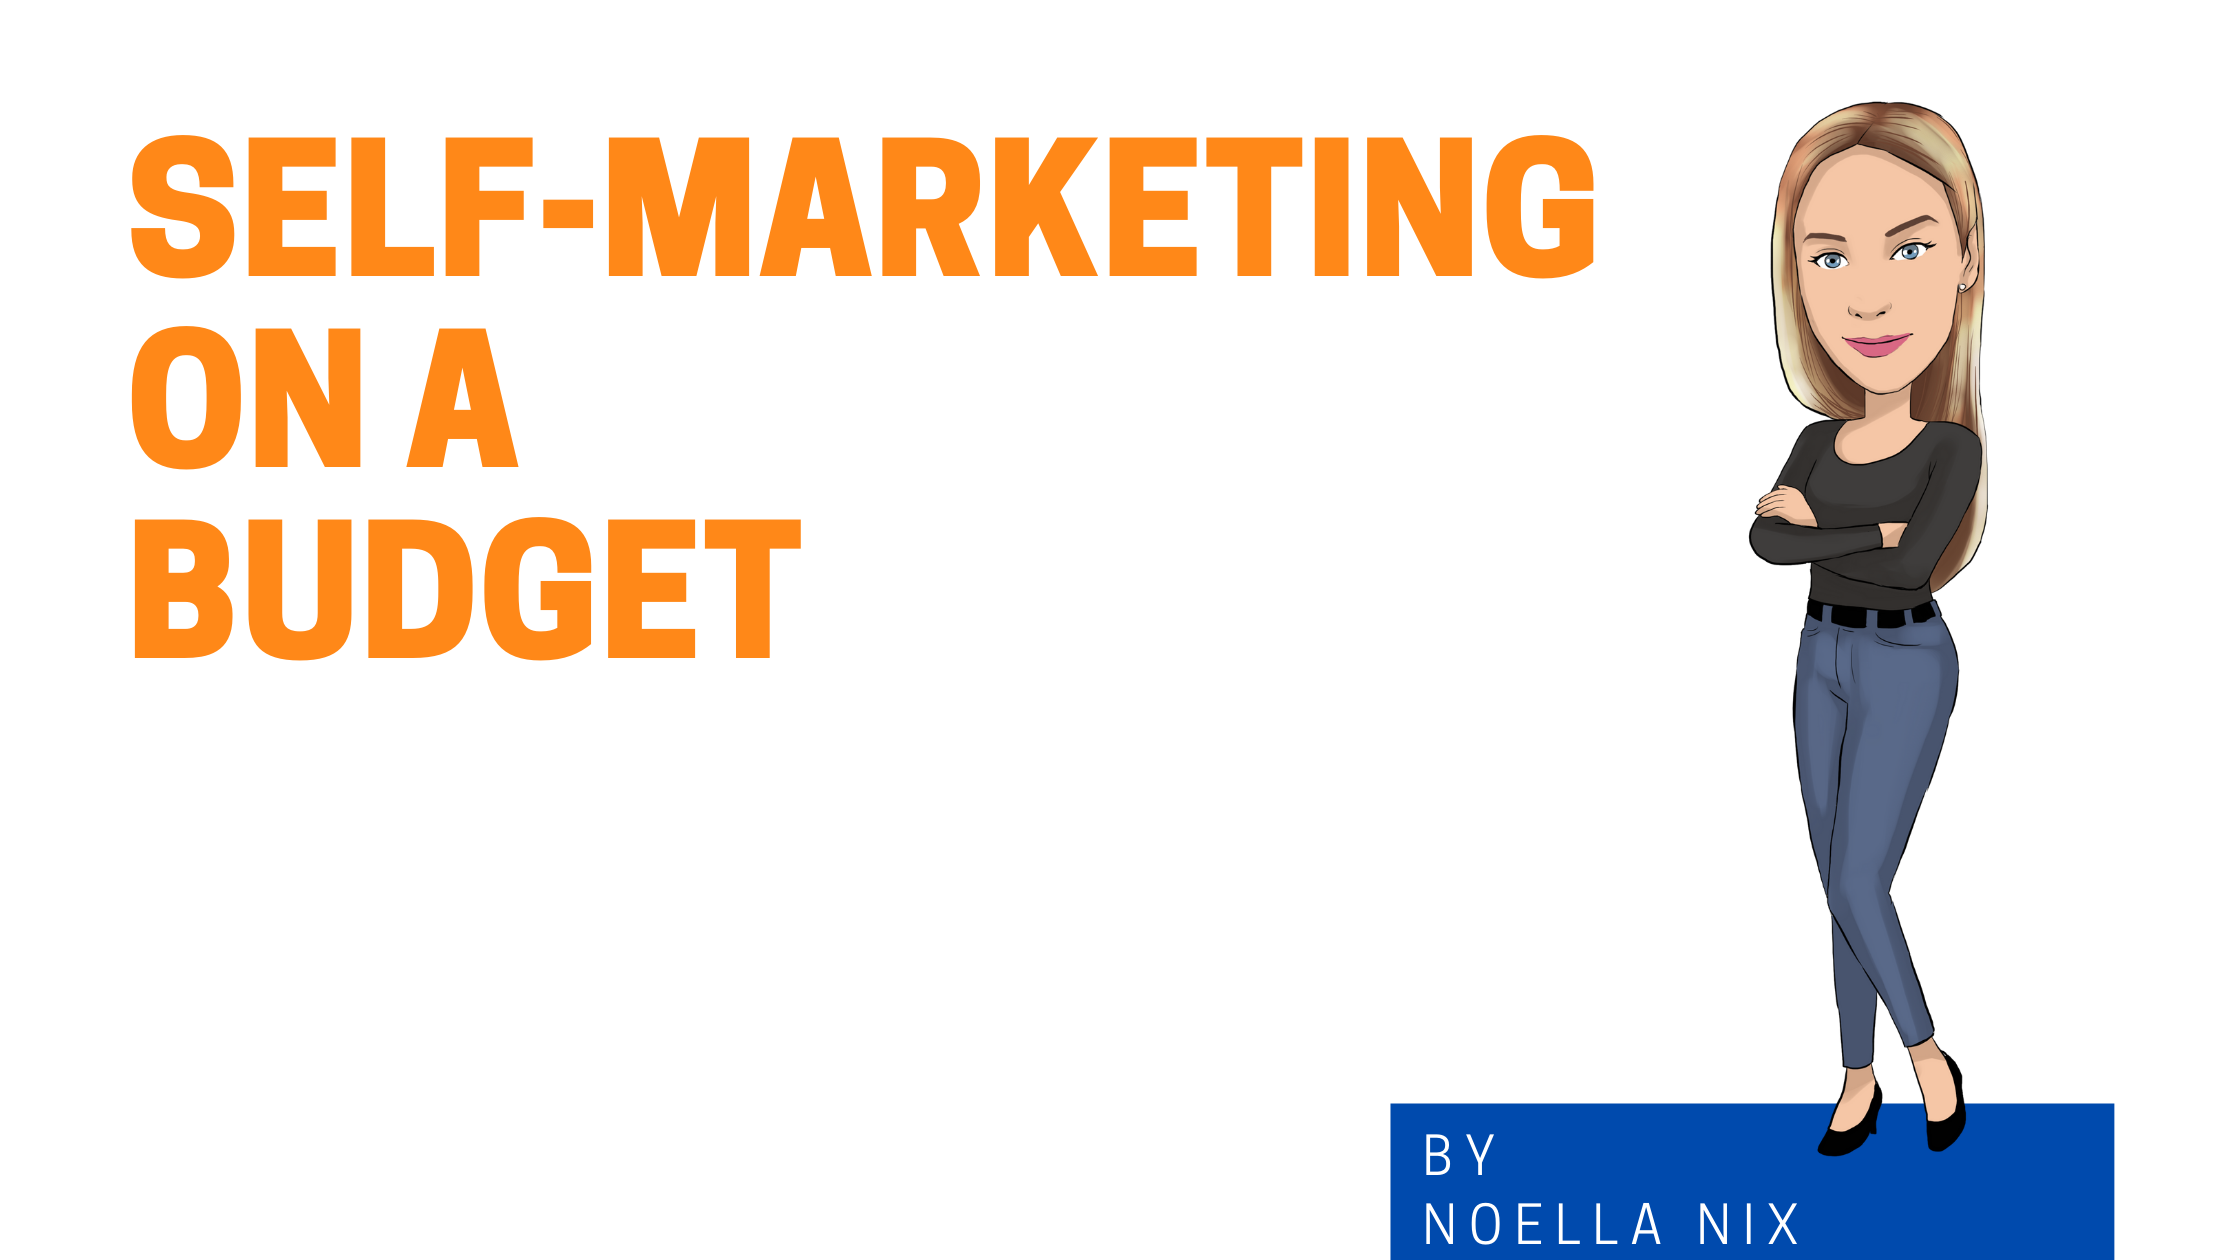 Self-Marketing on a Budget image graphic